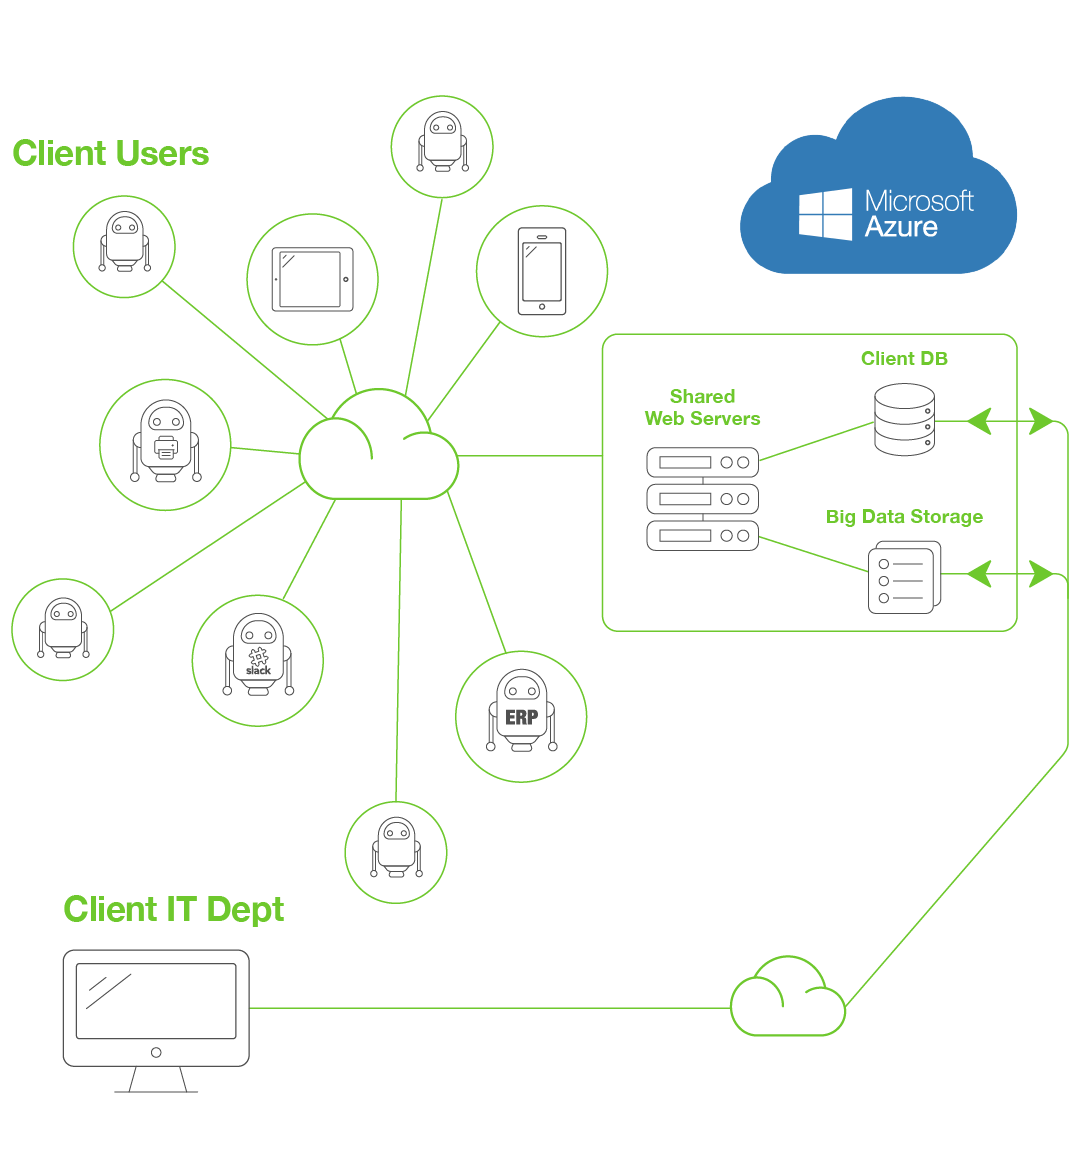 Cloud Based Graphic@2x.png